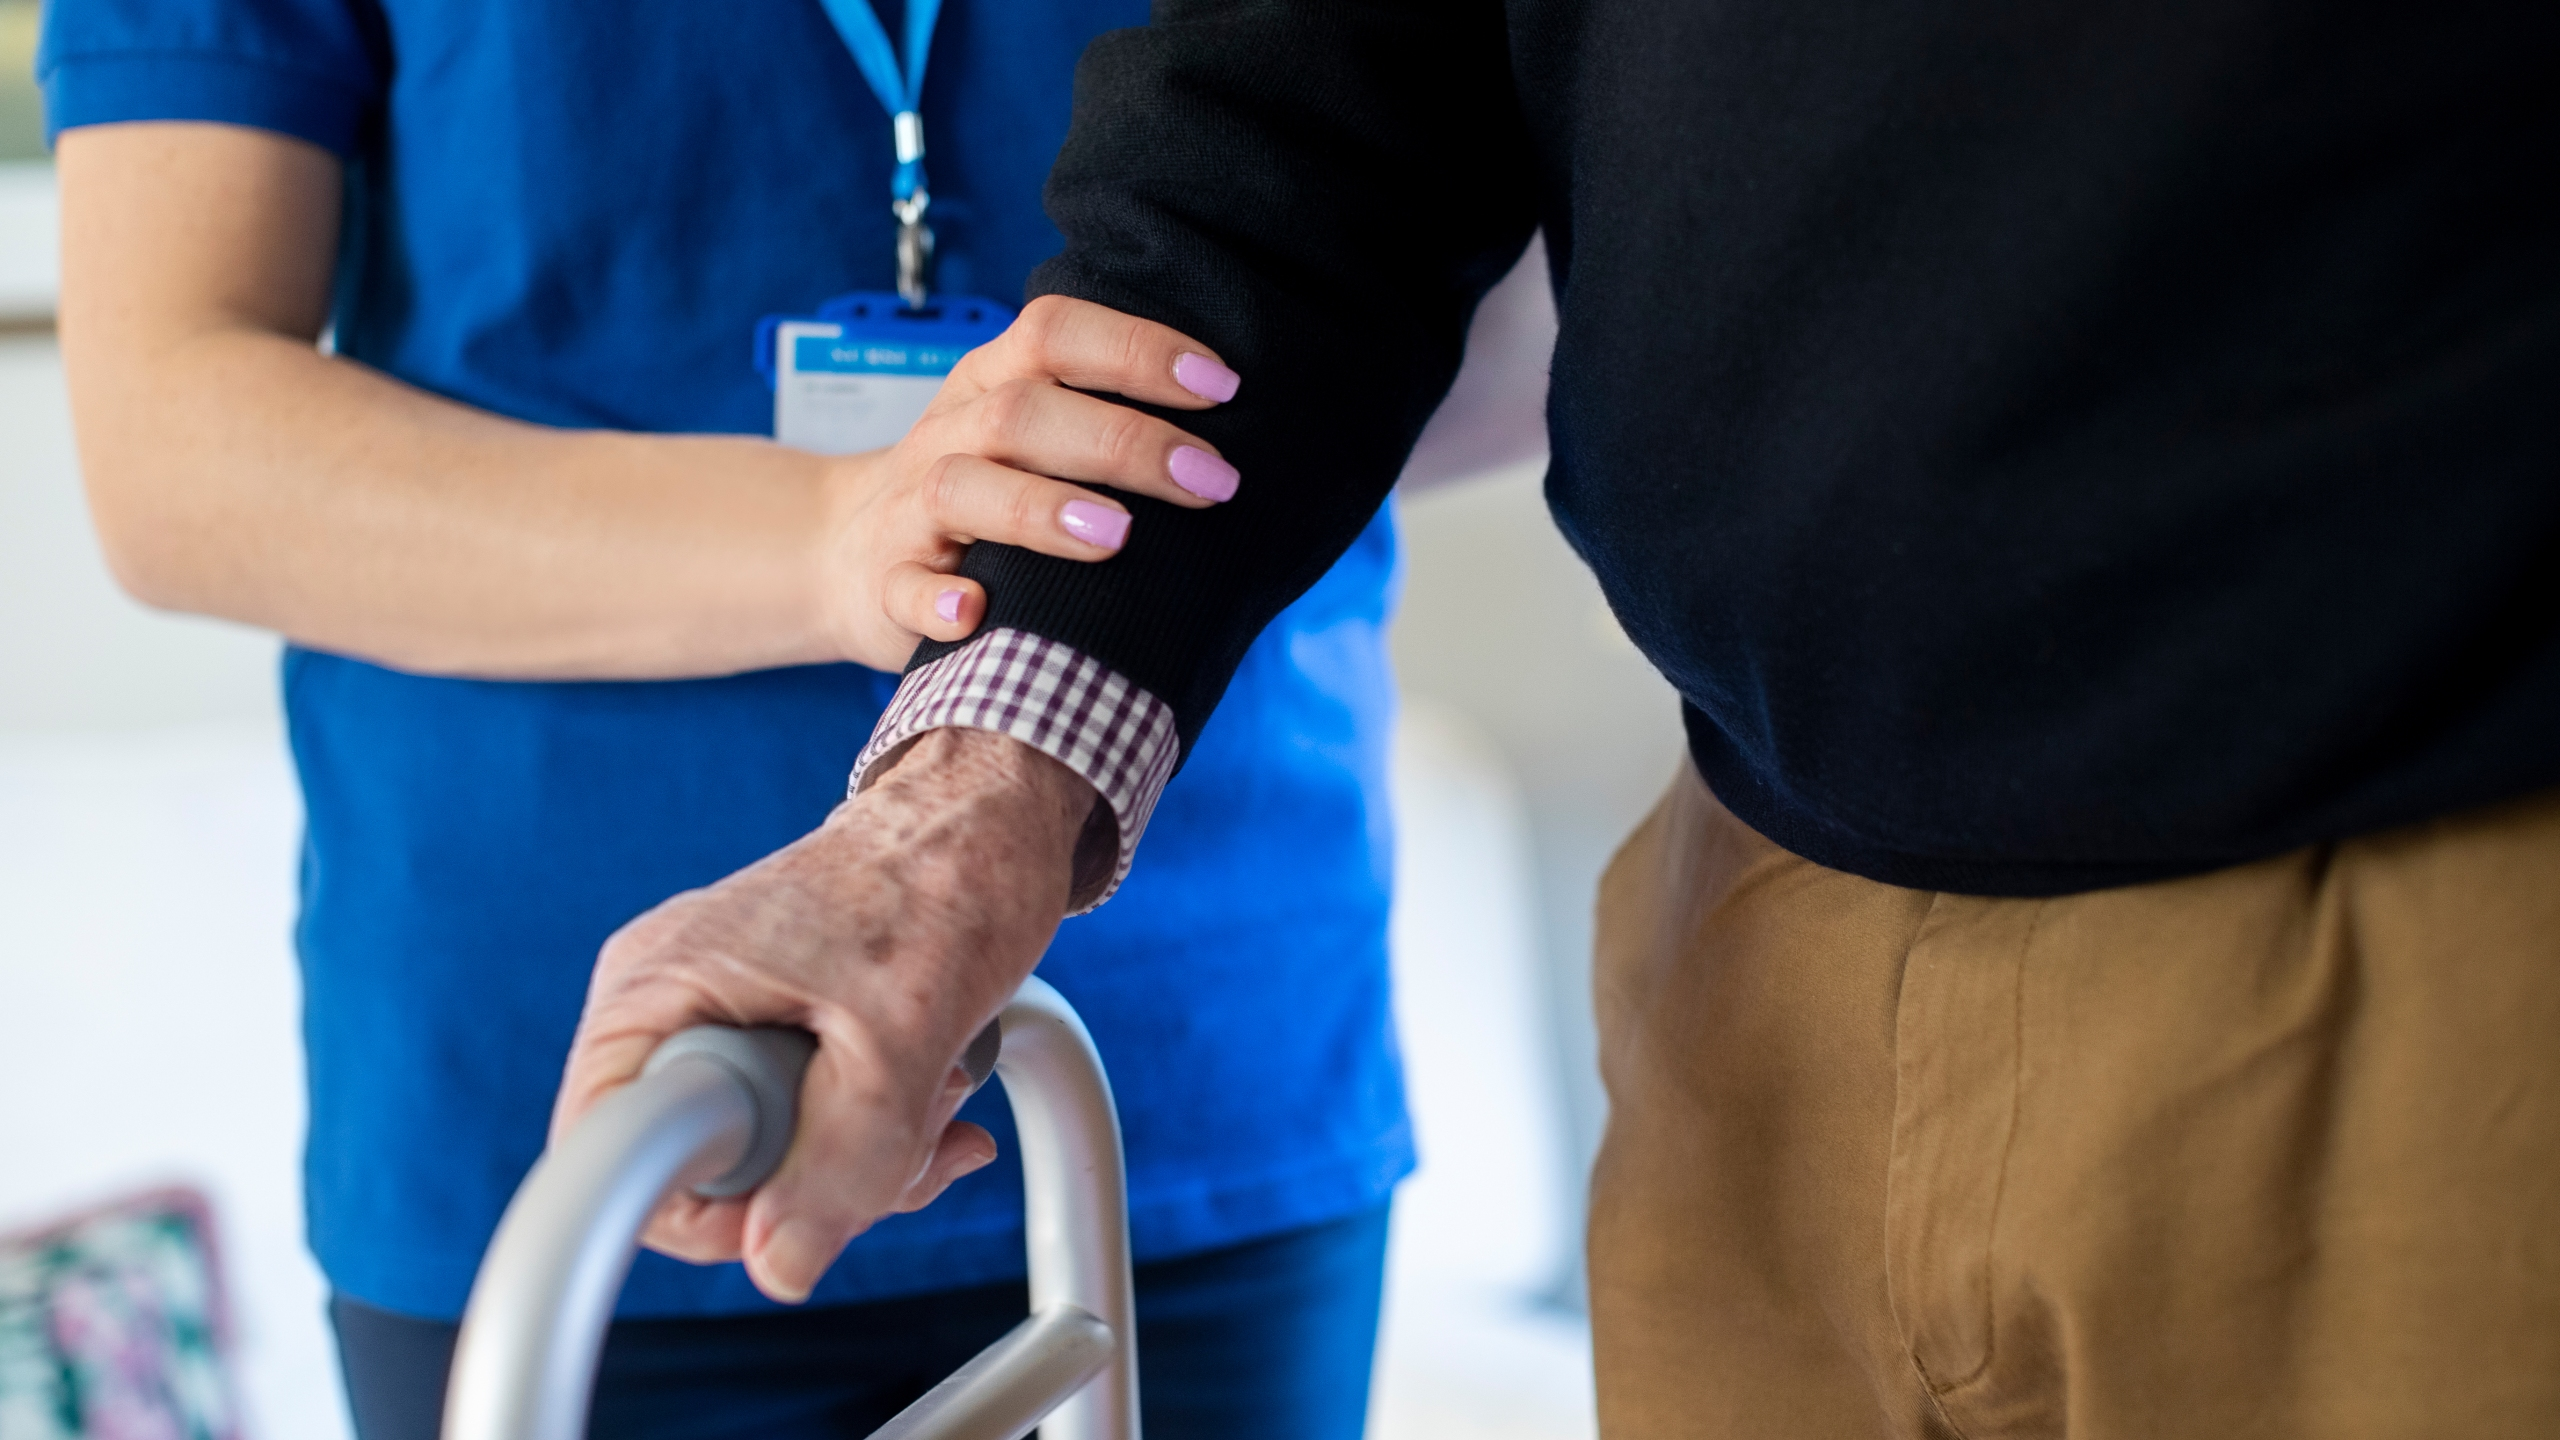 Close Up Of Senior Man With Hands On Walking Frame Being Helped By Care Worker